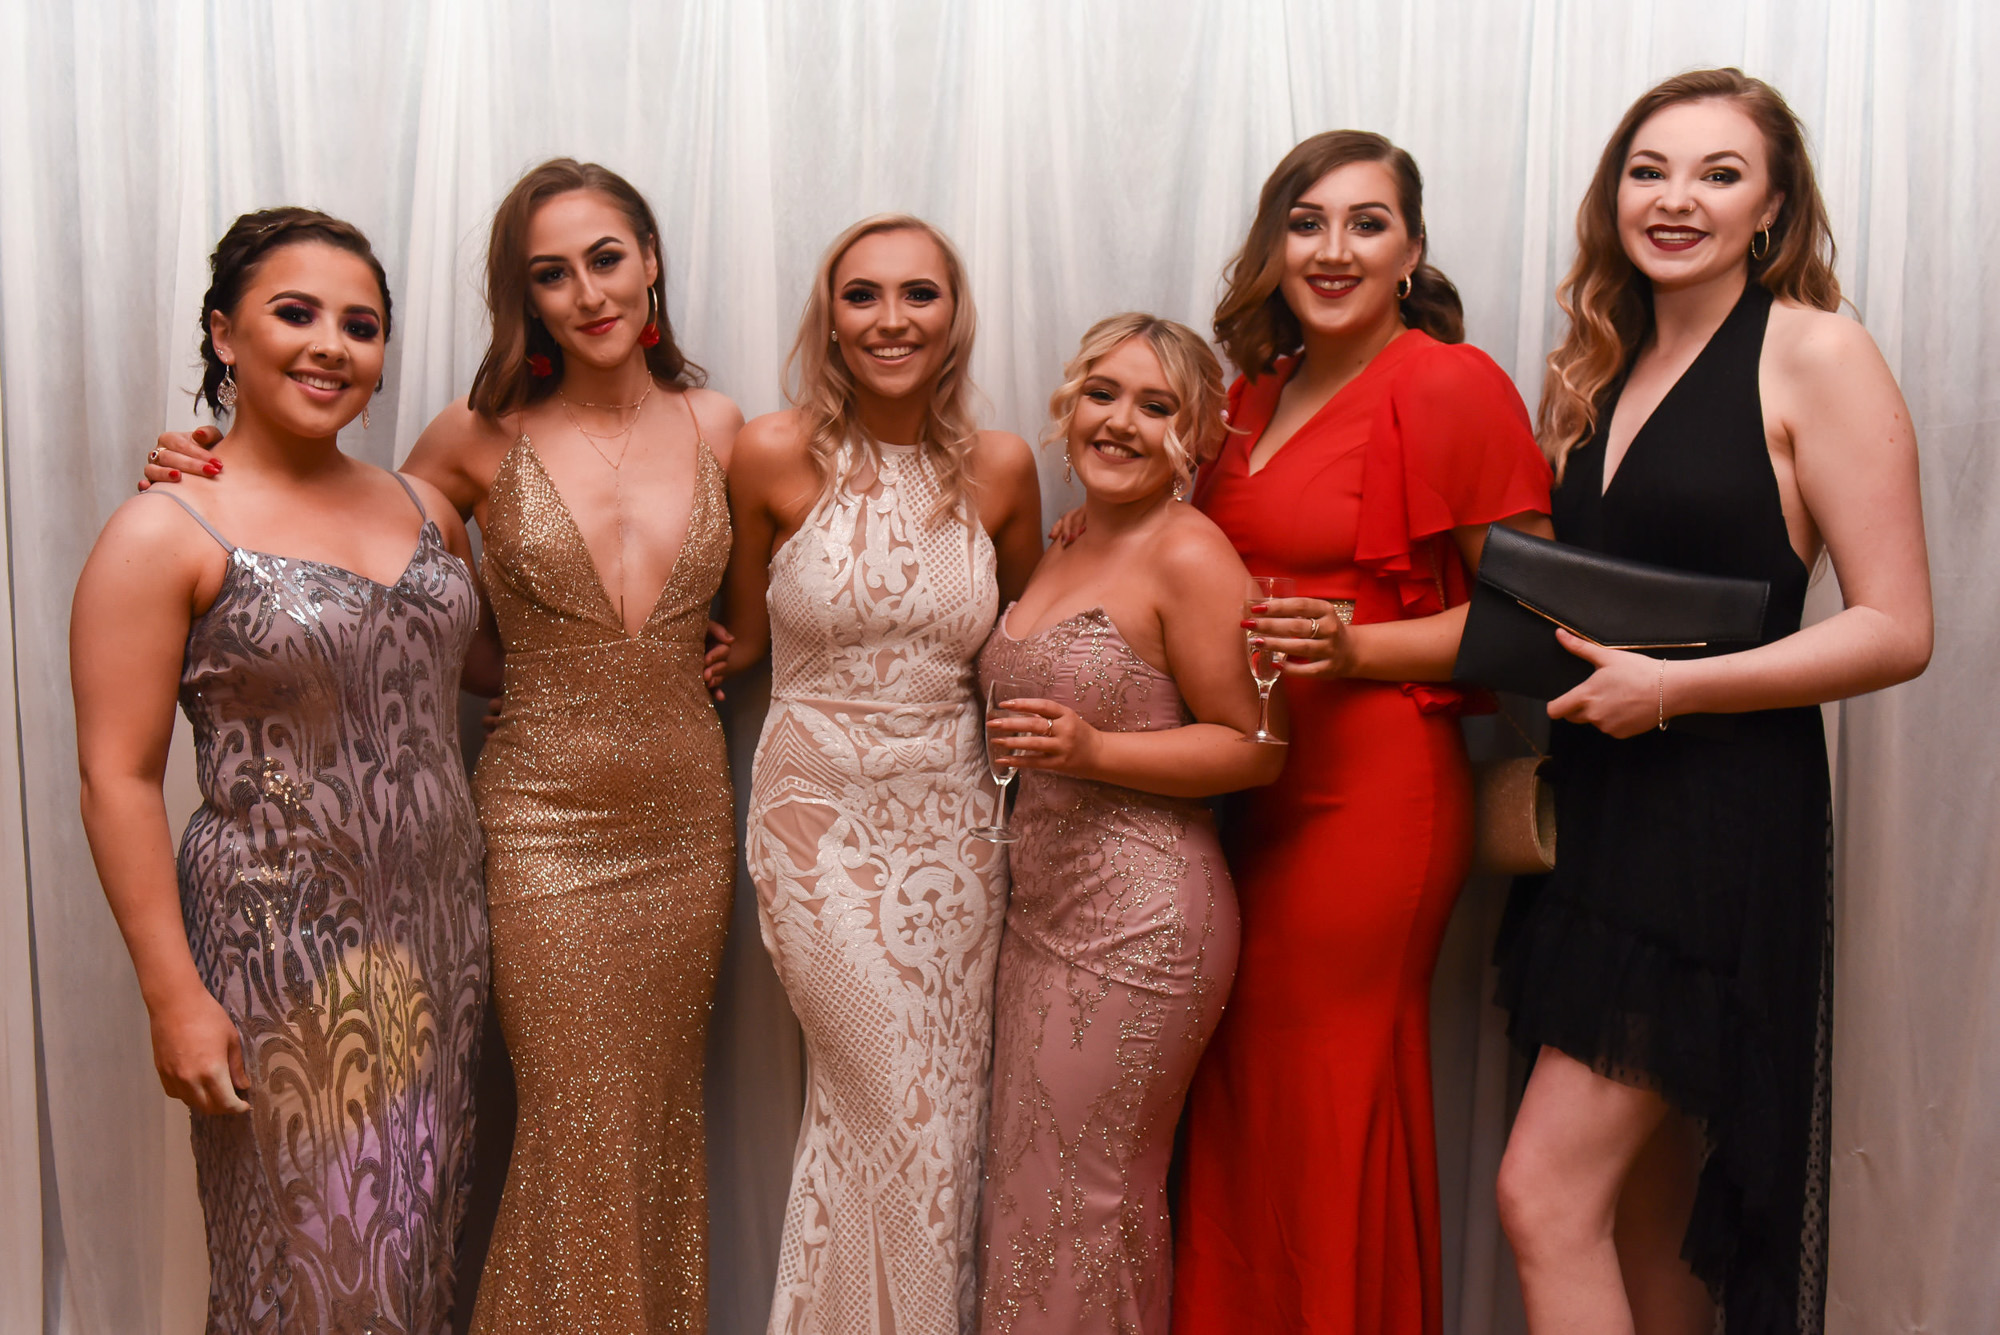 UCLAN_MT_BALL_2019_84.jpg